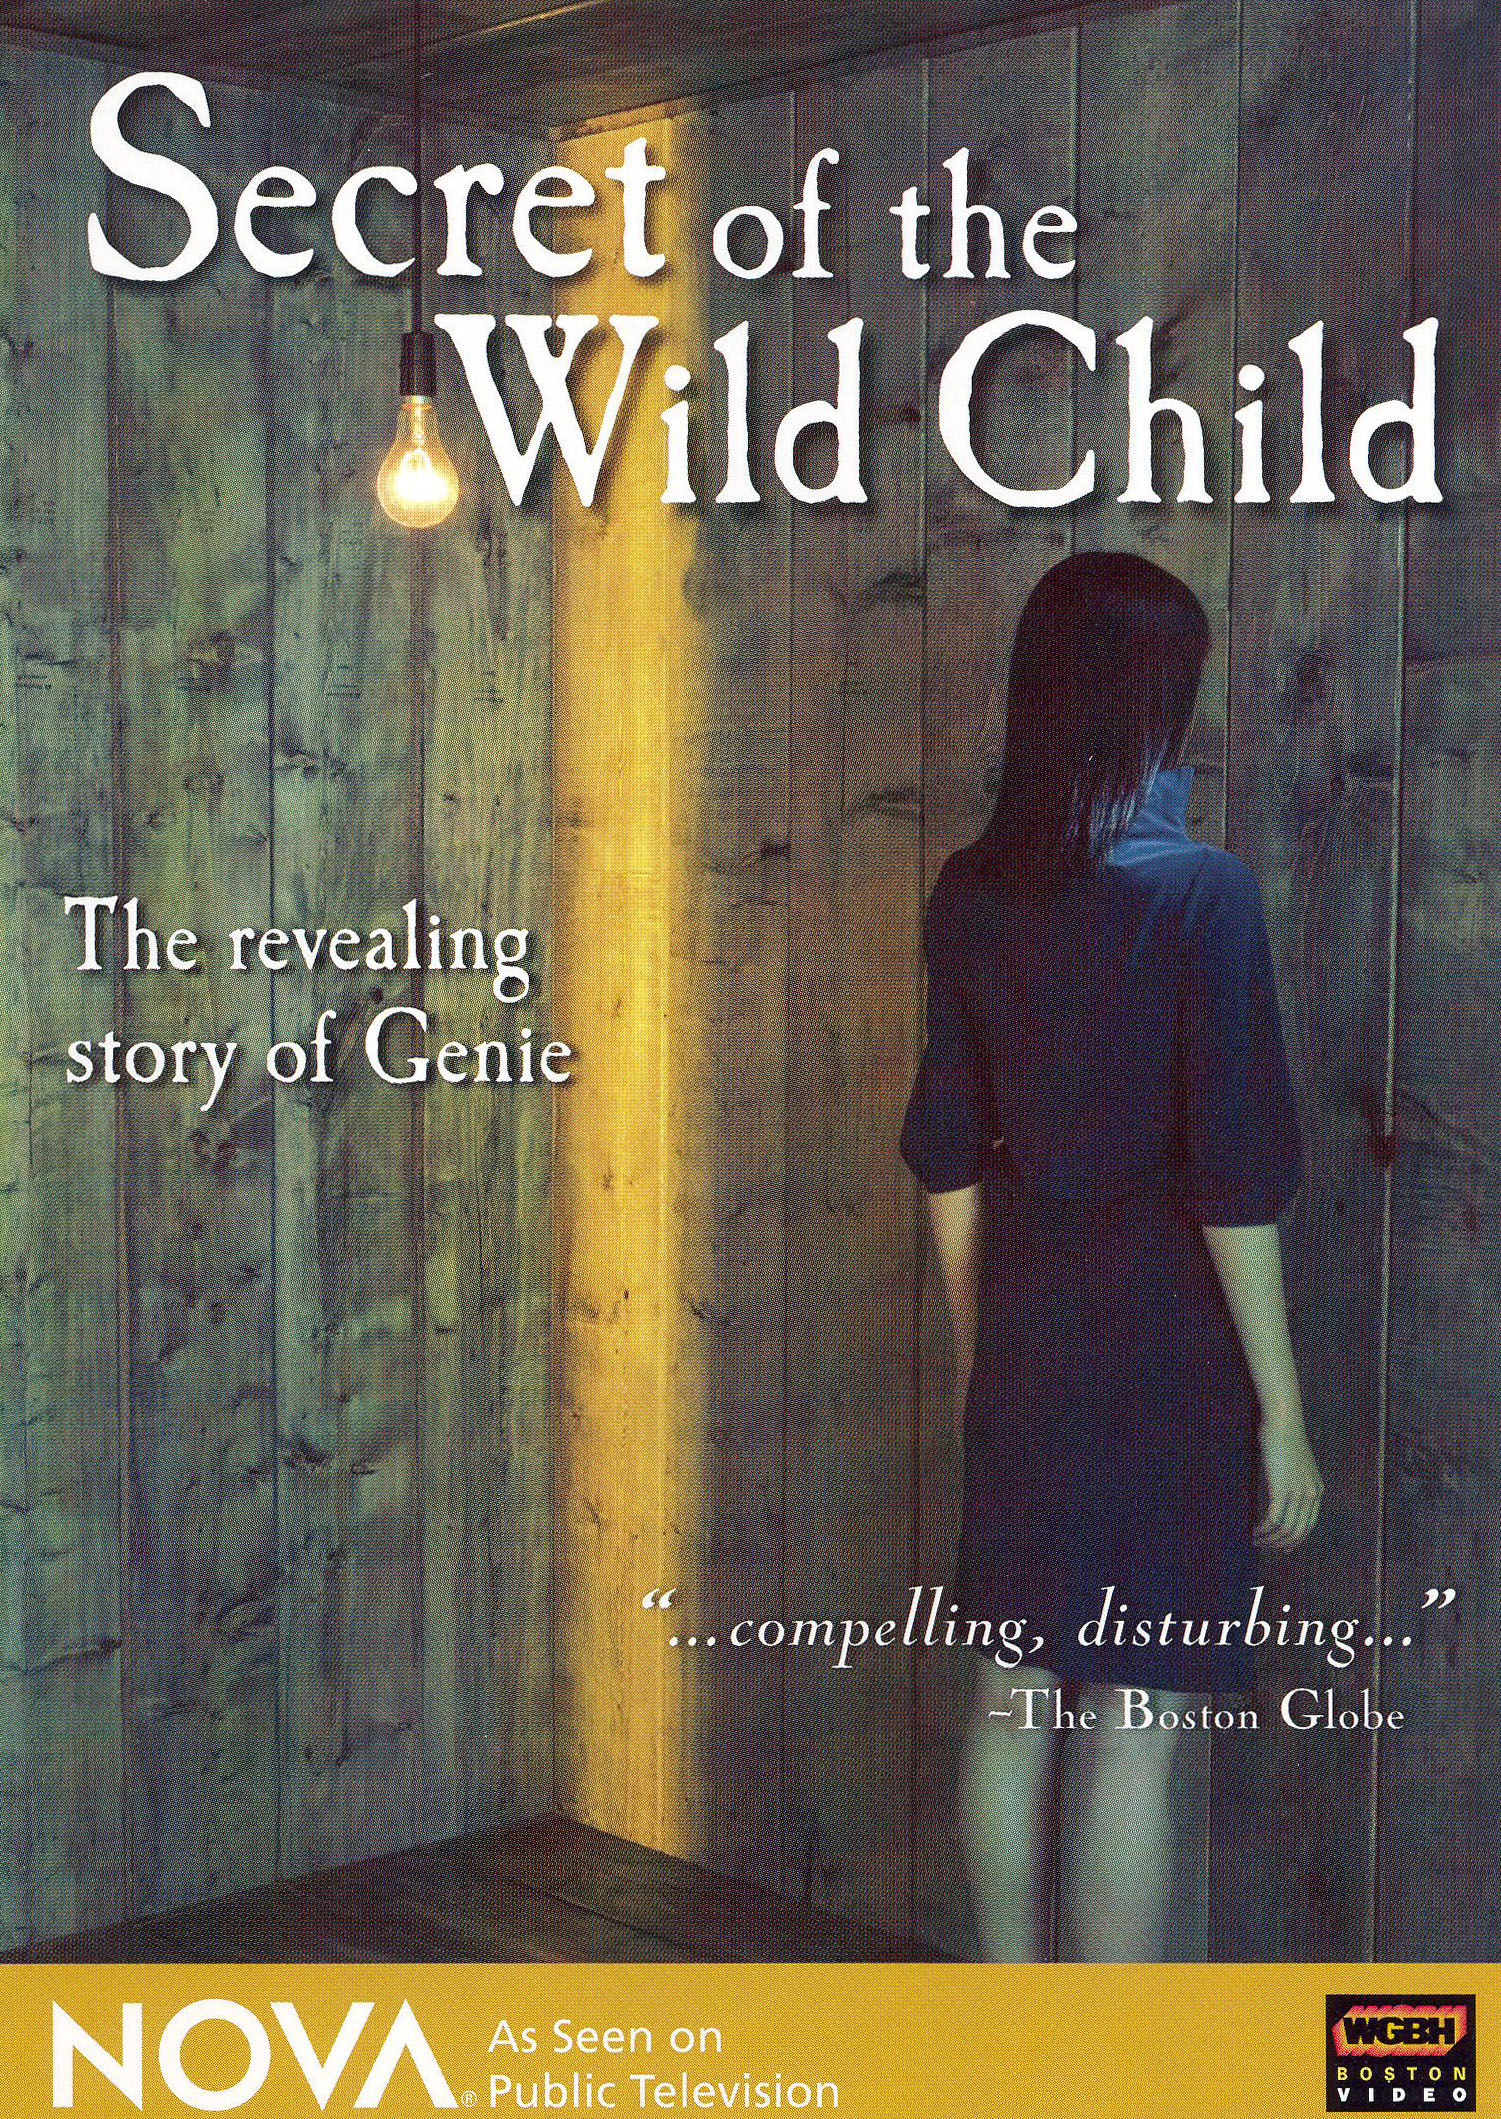 secrets of the wild child essay In 2002, an episode of the television series body shock on feral children entitled wild child included a segment on genie in addition to russ rymer's magazine articles and book about genie, he said that he drew the theme of his 2013 novel paris twilight from genie's life.